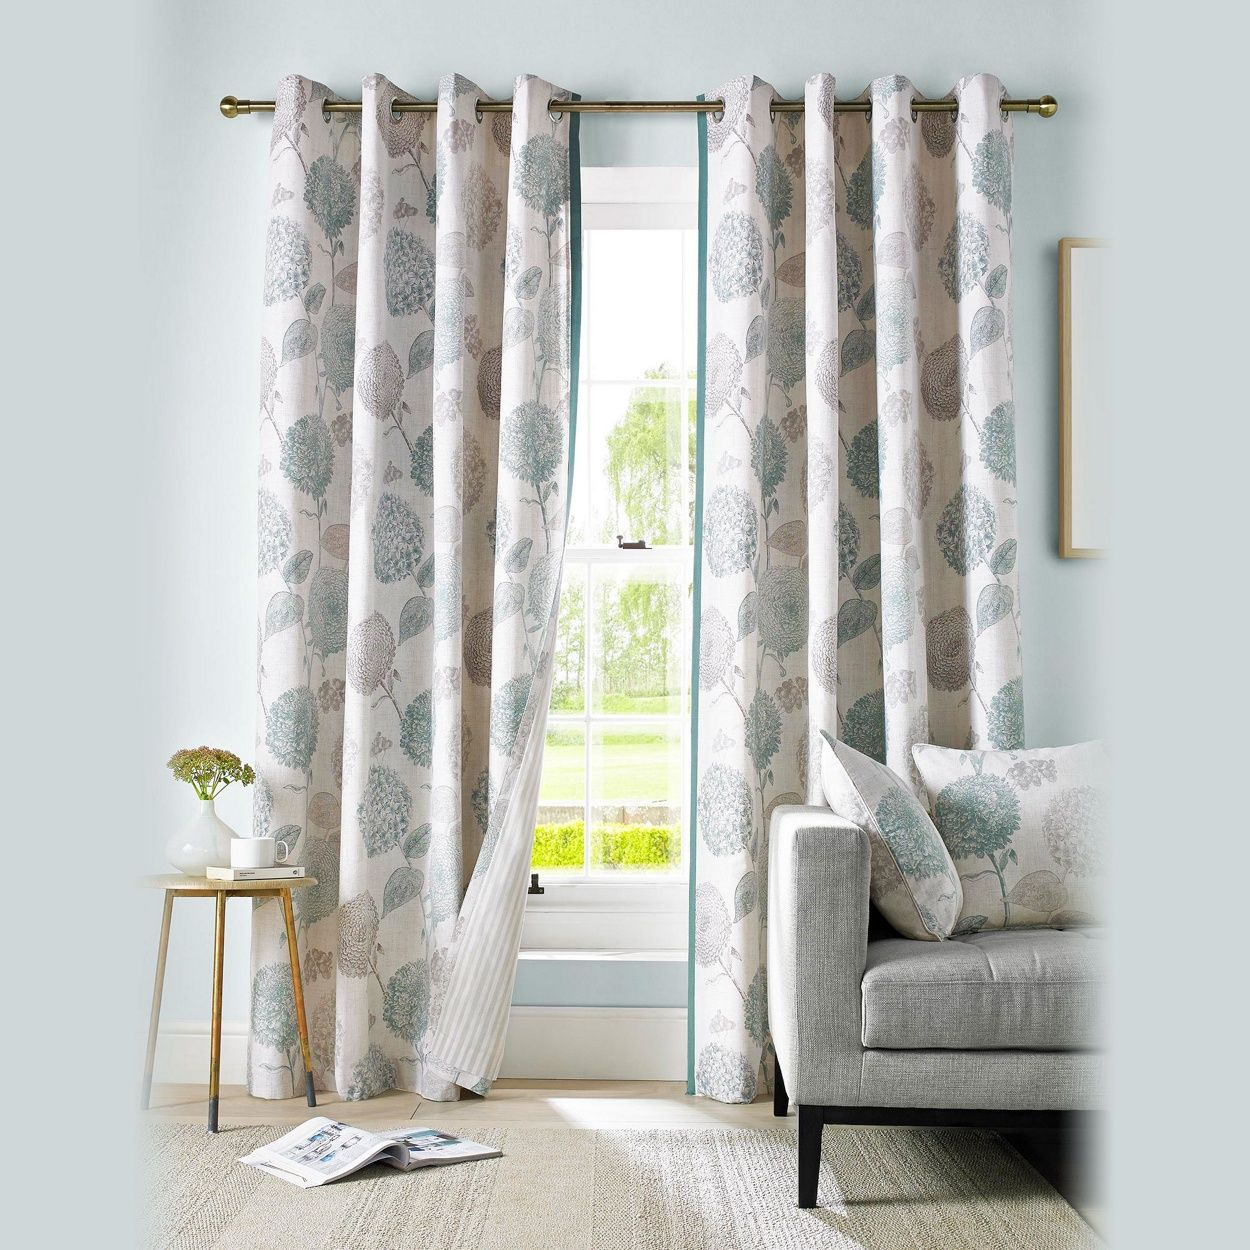 A fresh modern 100% cotton fabric. This stylish floral patterned ...